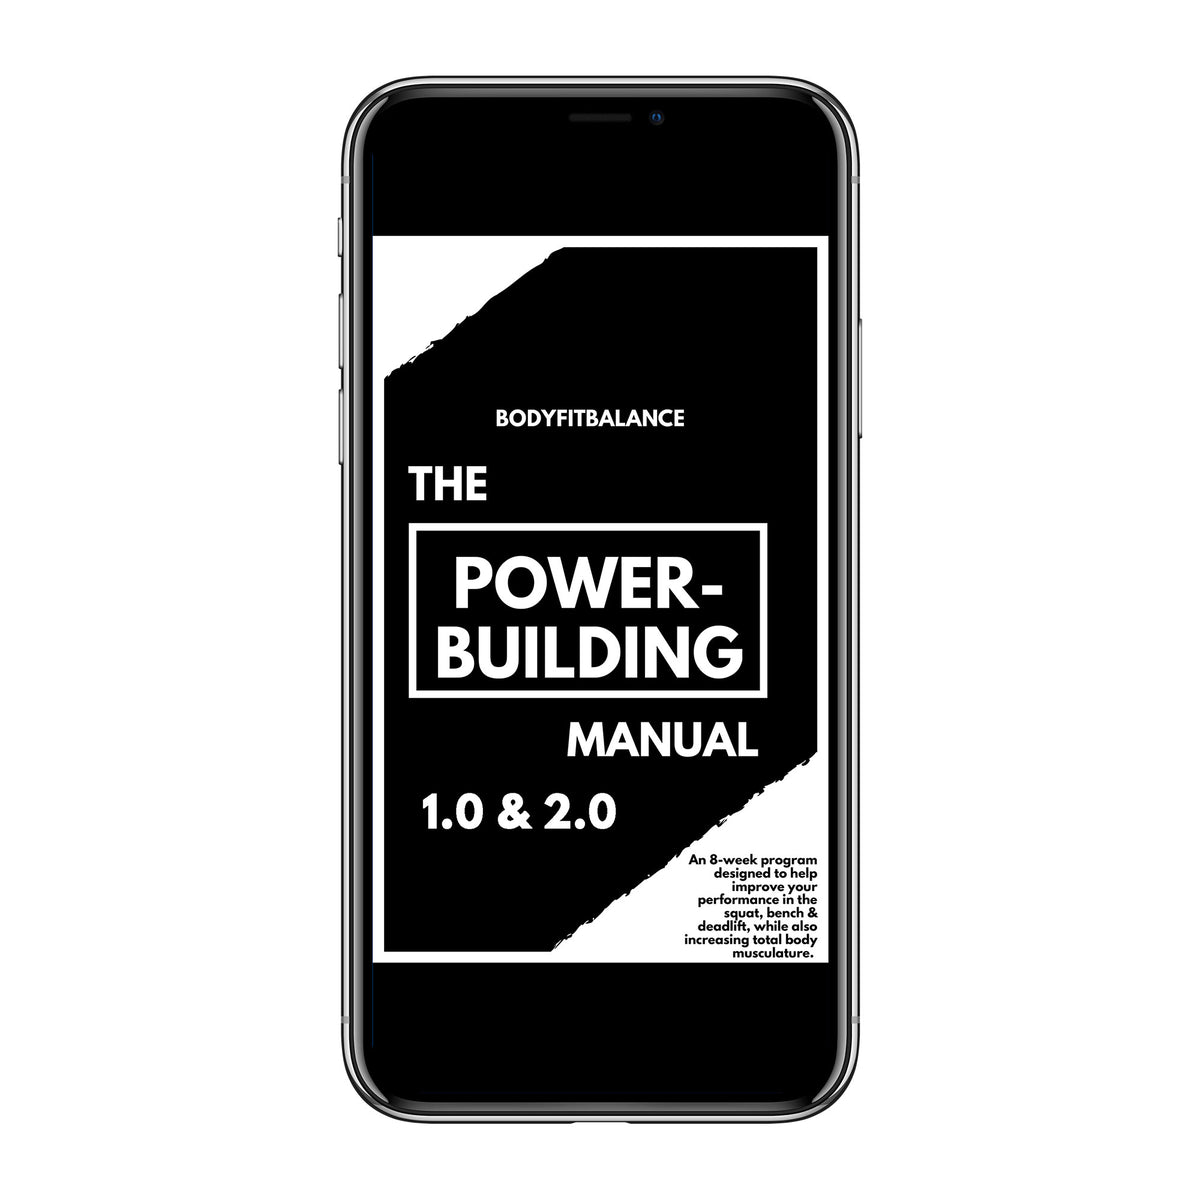 THE POWER-BUILDING MANUAL